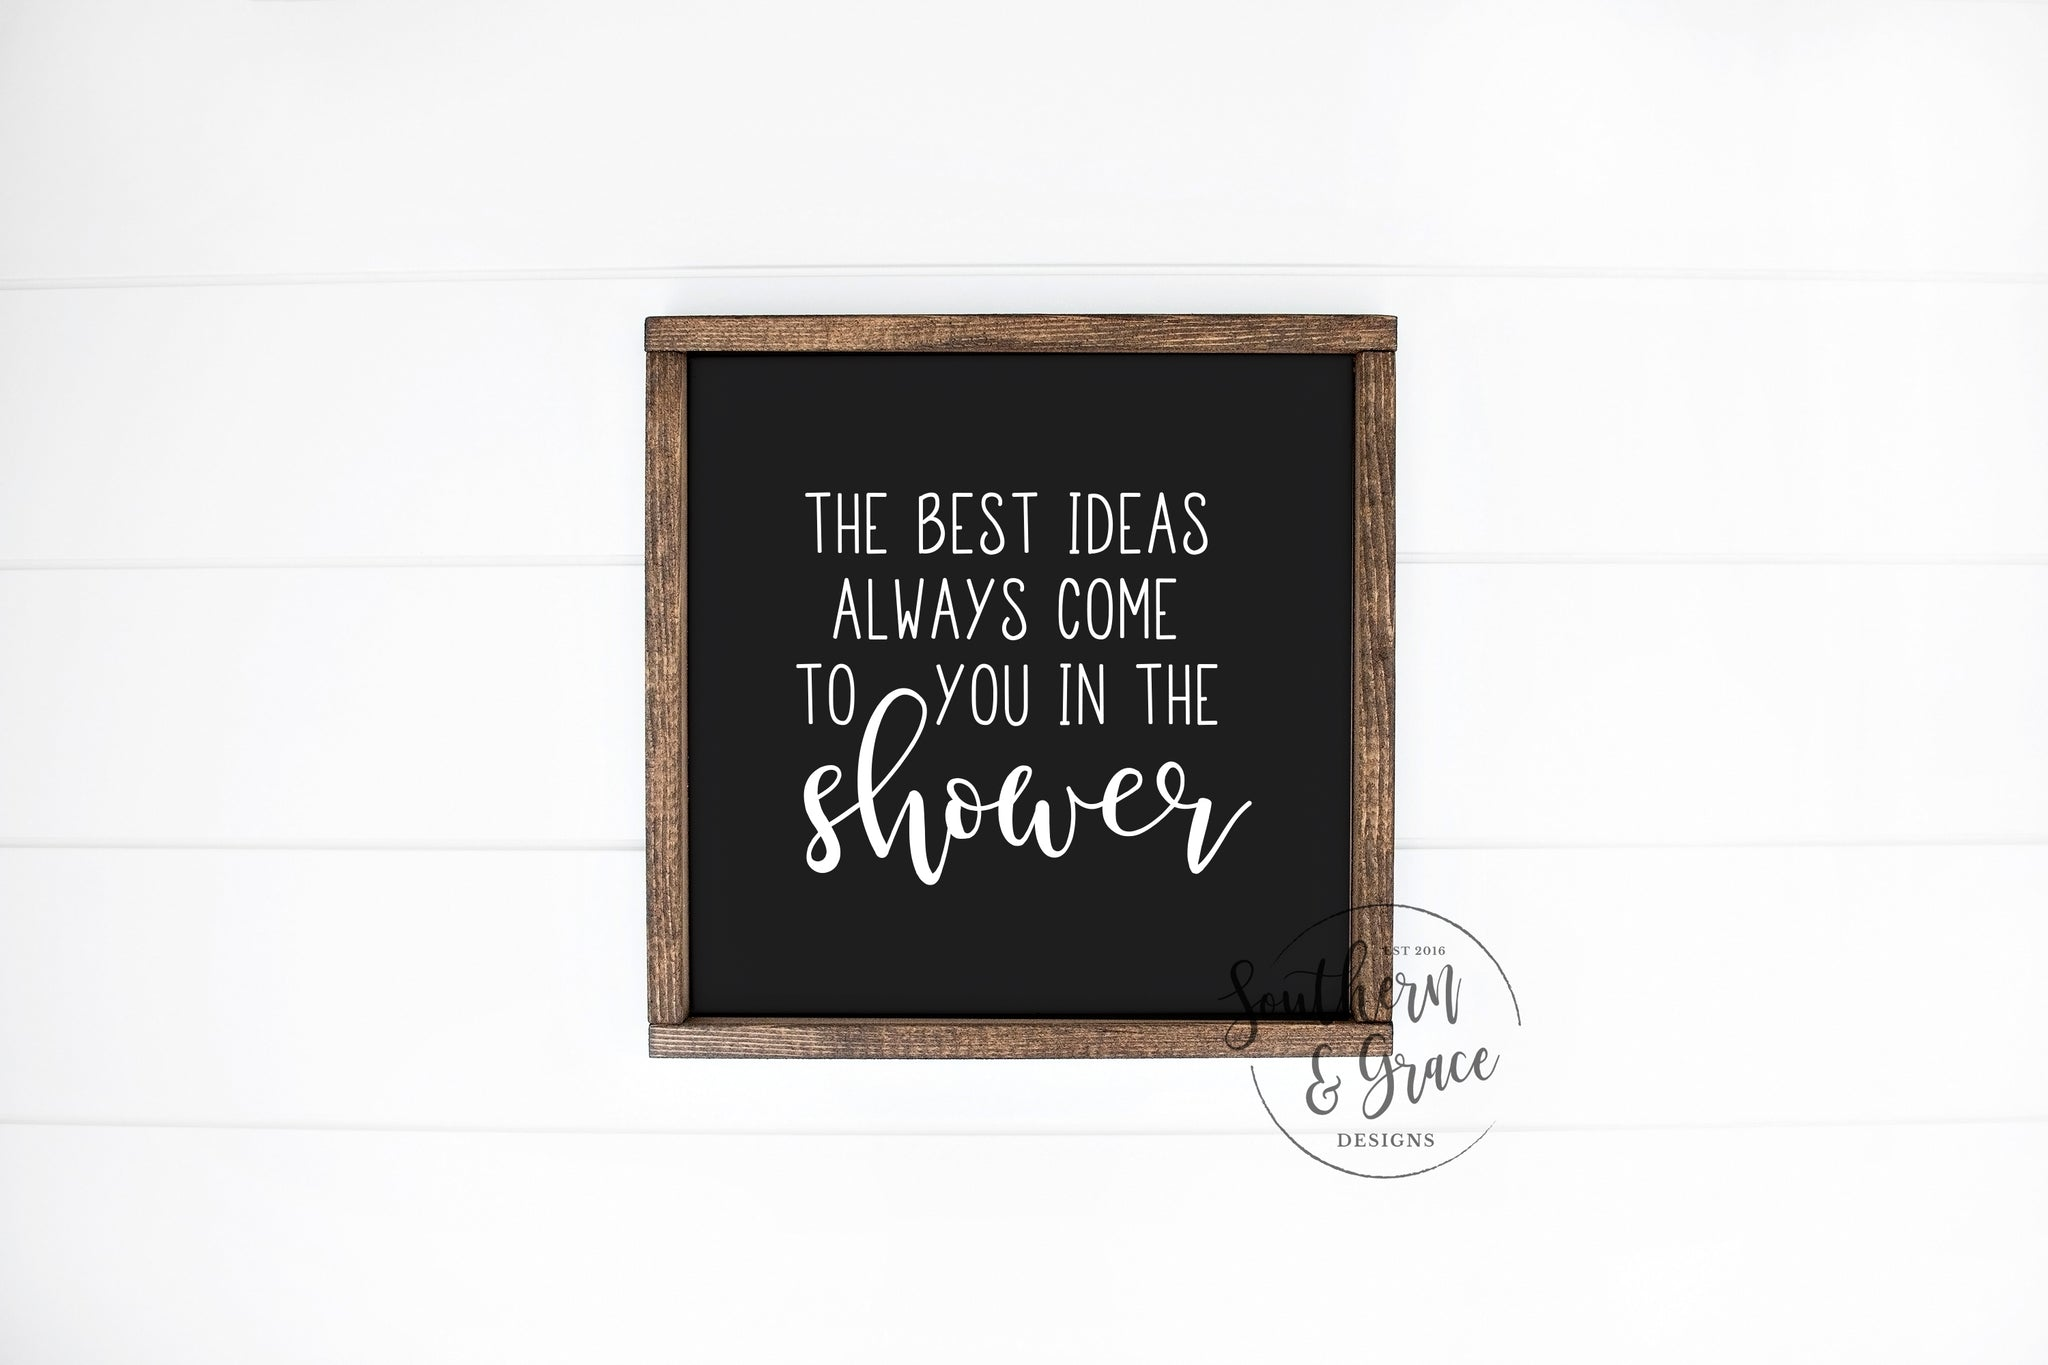 The Best Ideas Framed Wood Sign